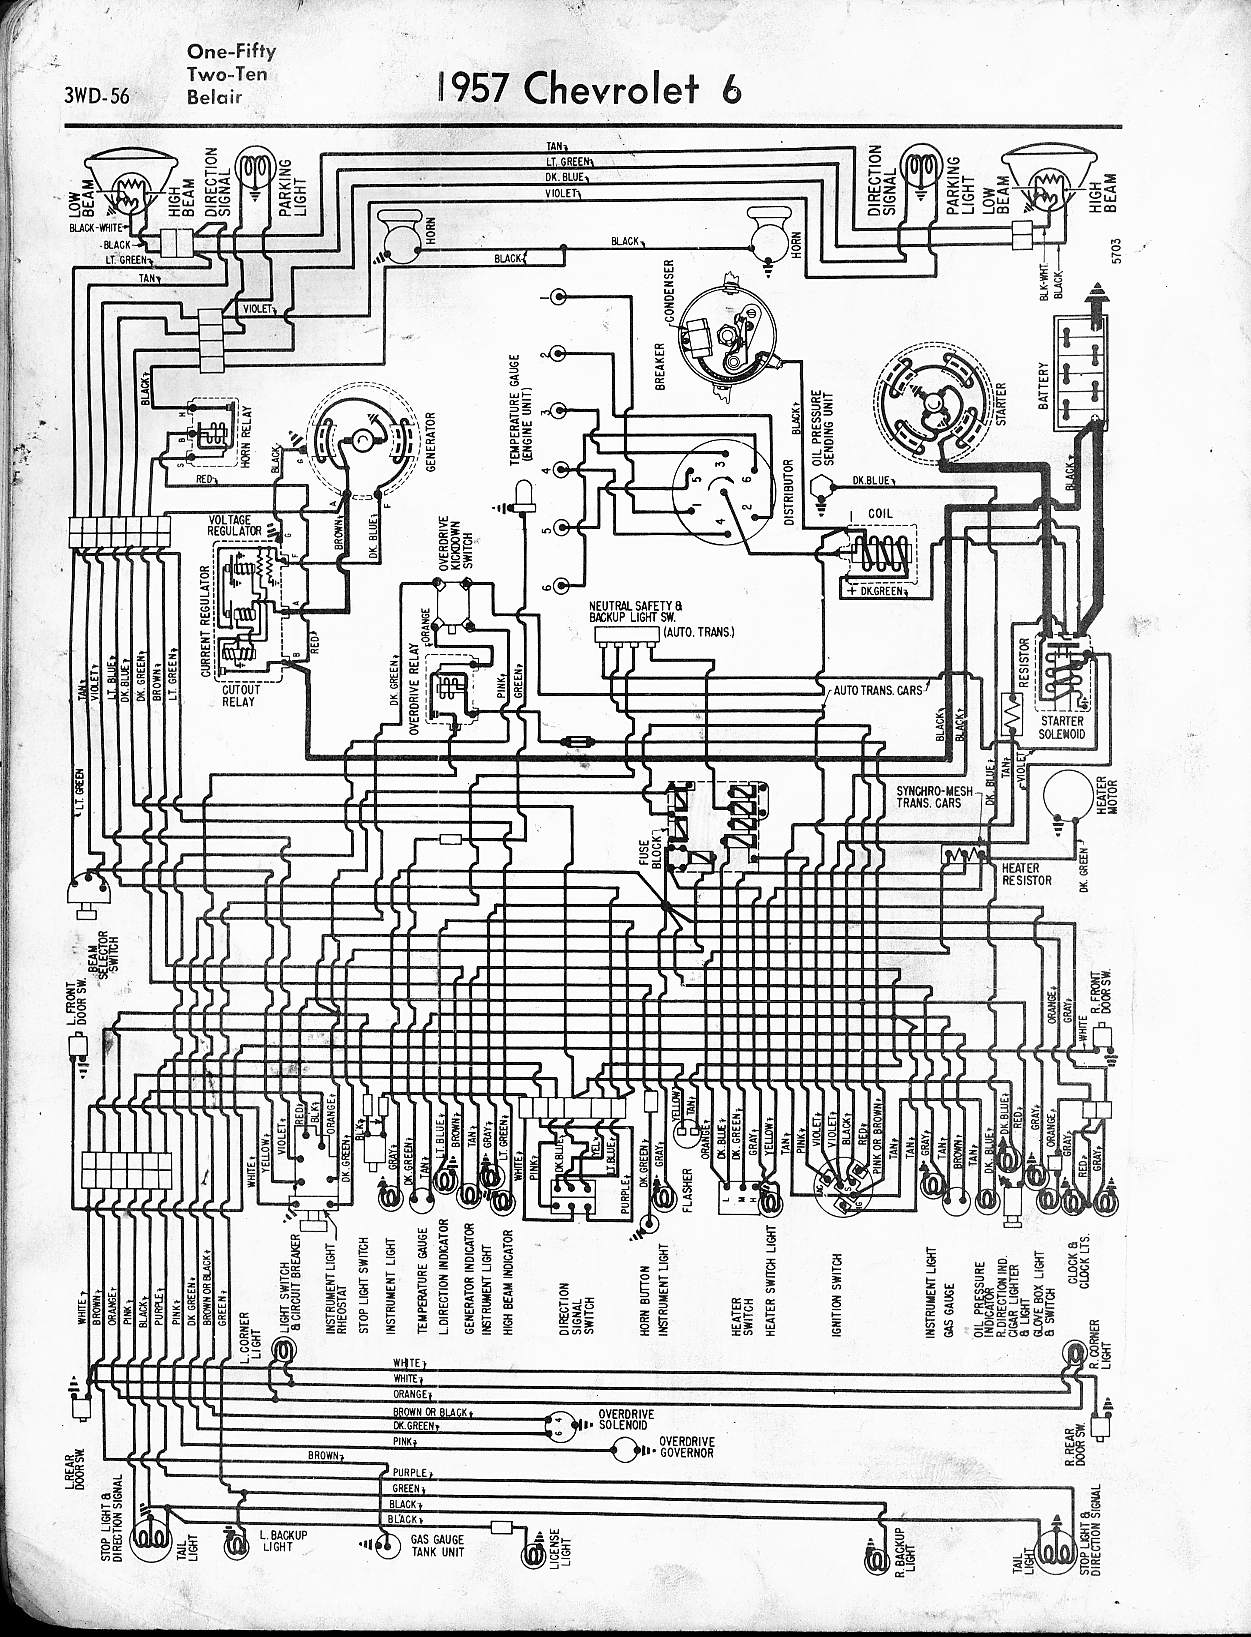 MWireChev57_3WD 056 57 65 chevy wiring diagrams 57 chevy truck wiring harness at metegol.co